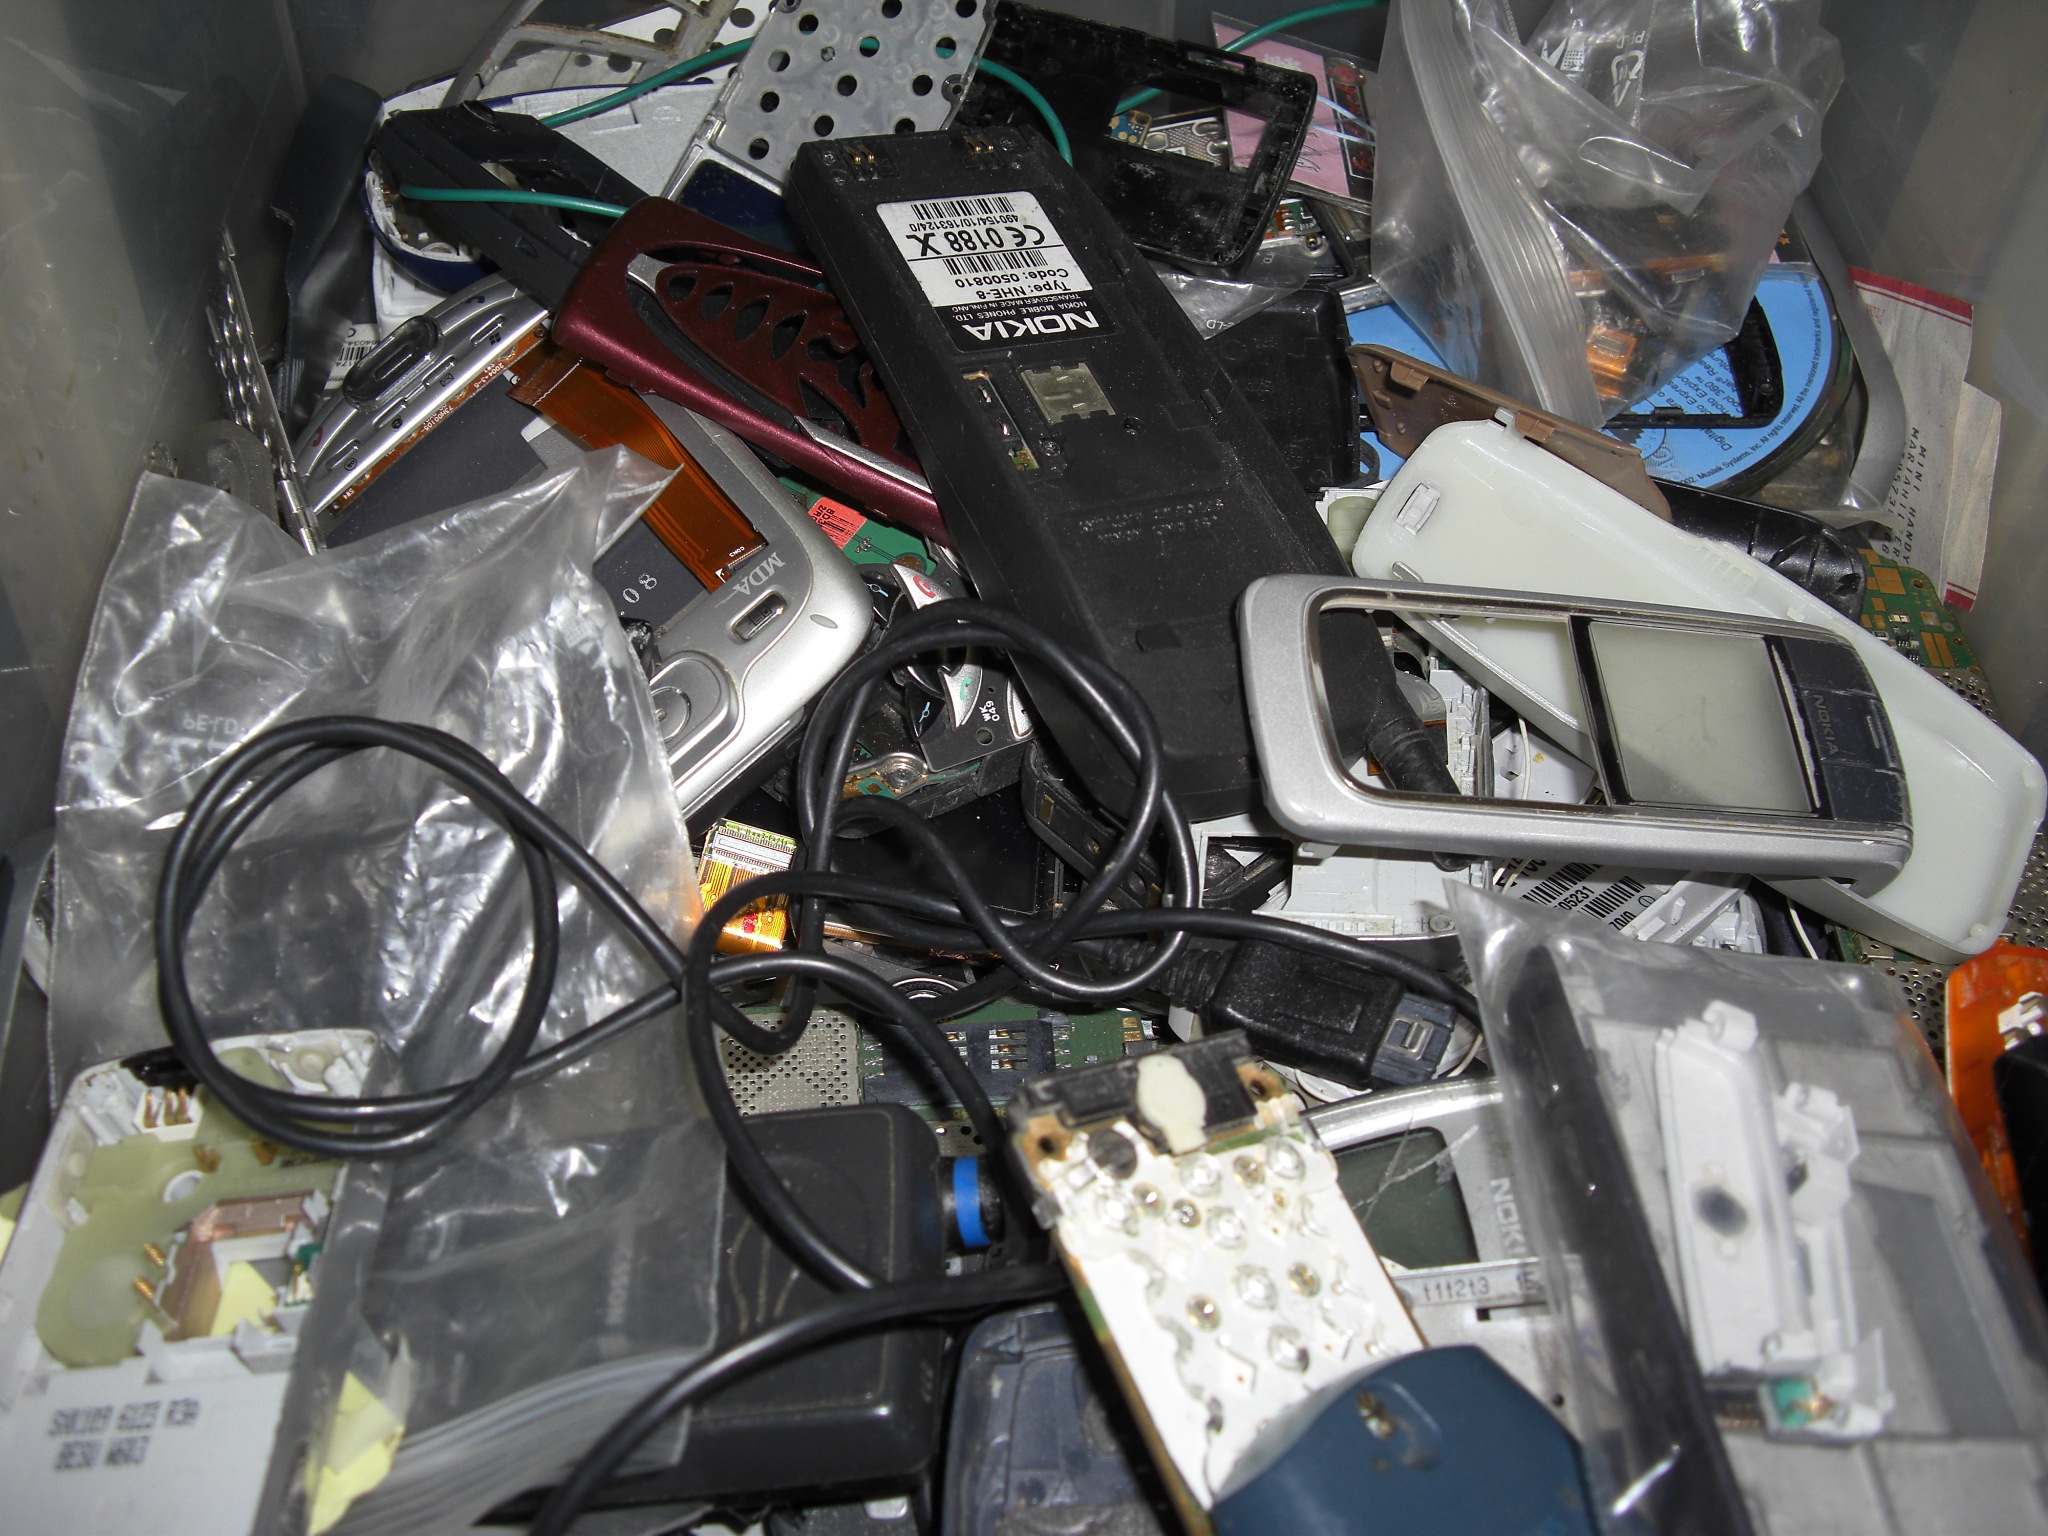 Handy_schrott_mobile_phone_scrap